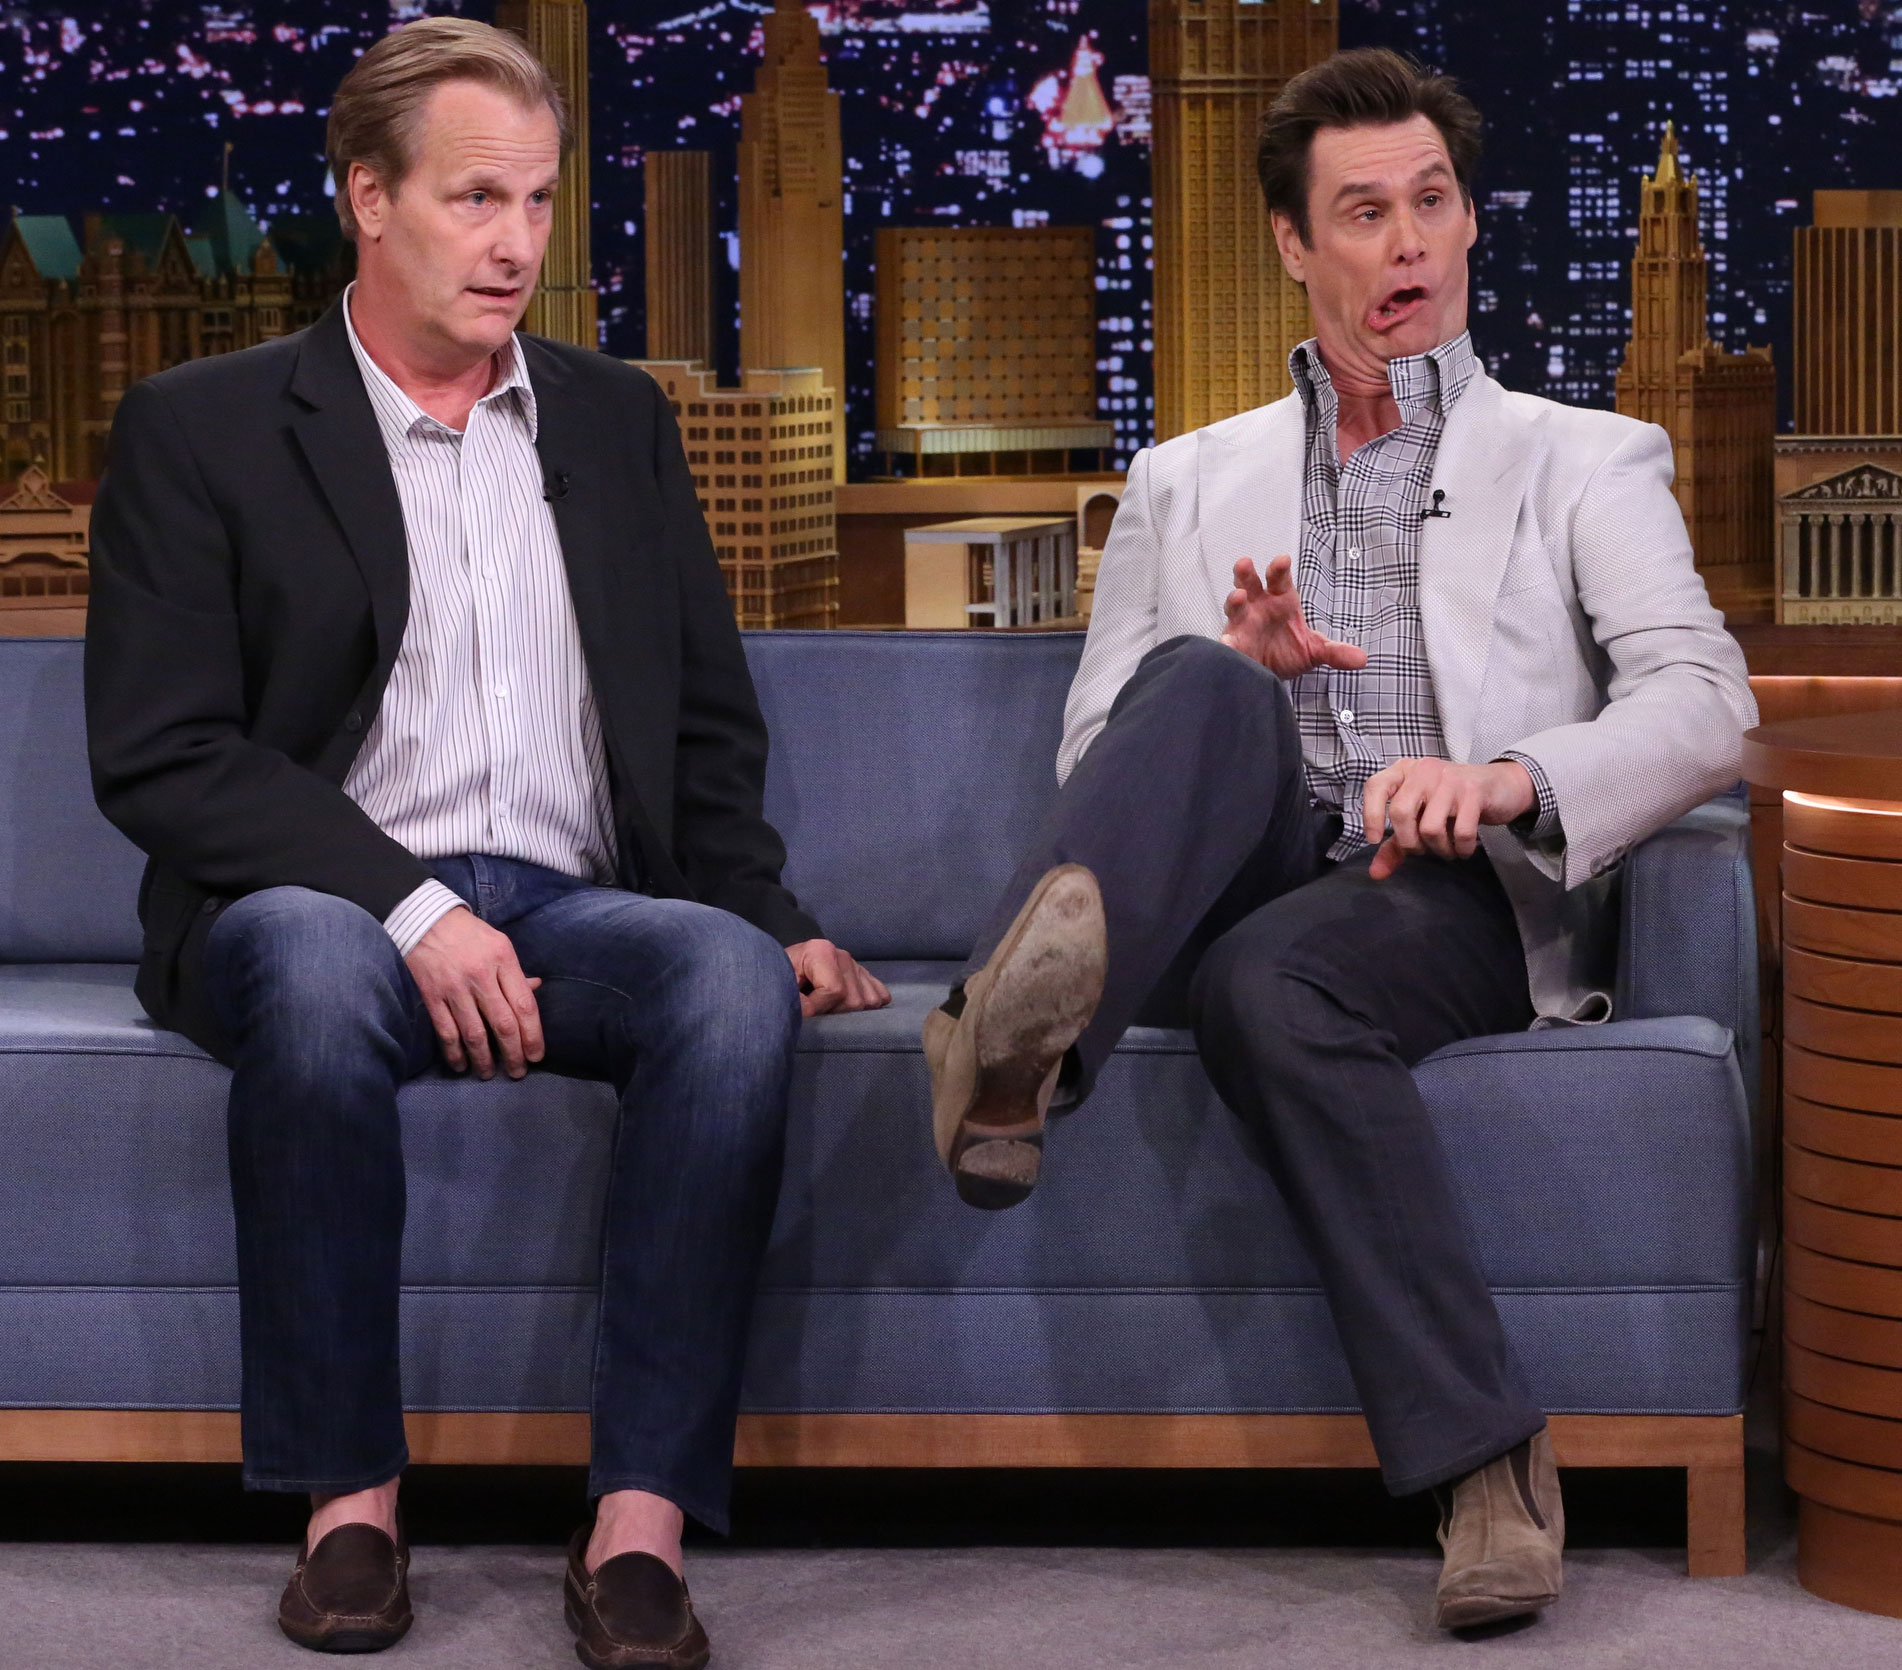 Roll Call: Jim Carrey & Jeff Daniels' 'Dumb And Dumber To